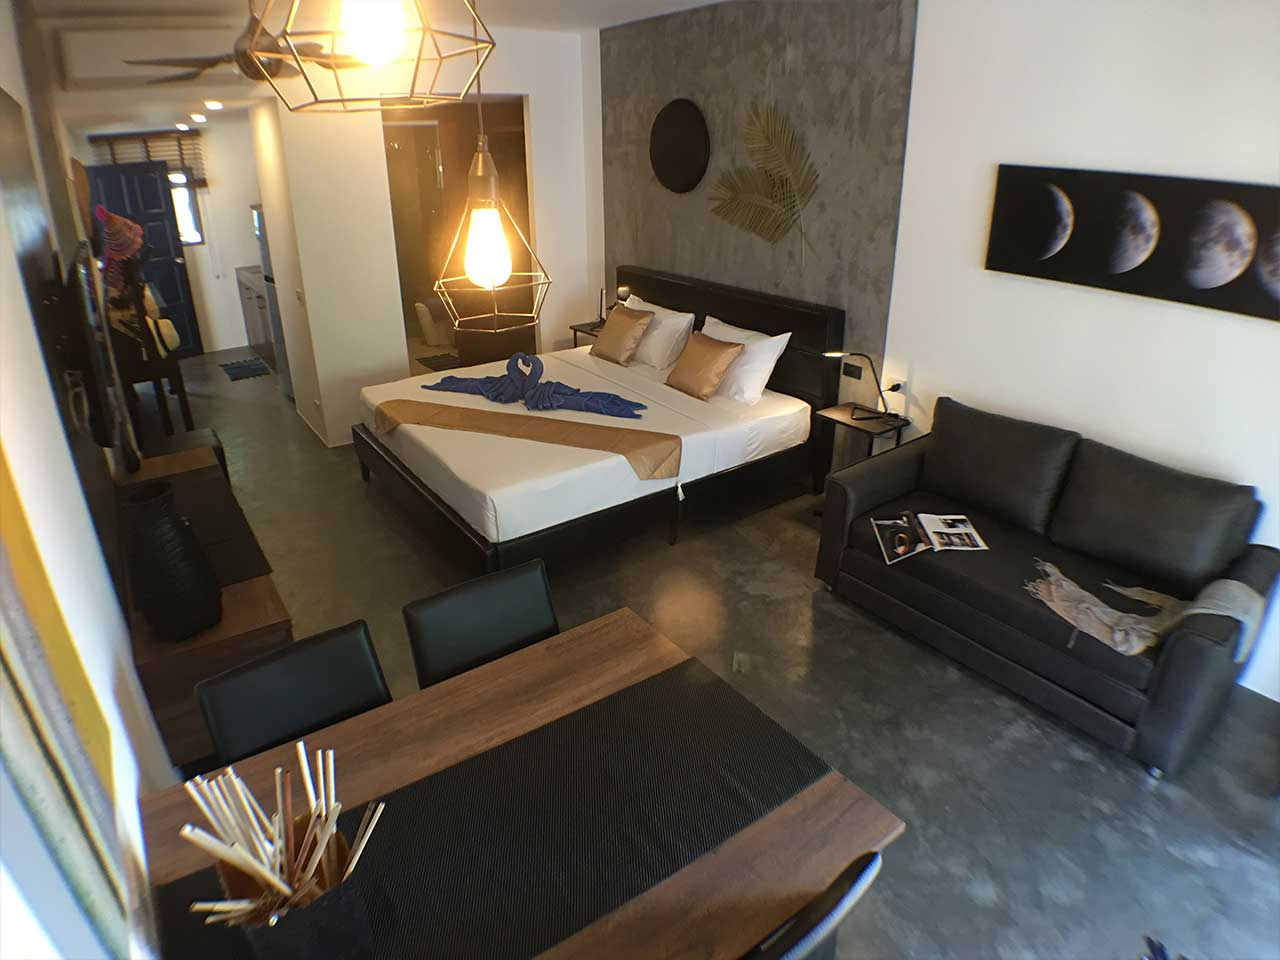 maphrao-resort-kamala-beach-phuket-rooms-interior-STUDIO-23-APARTMENT-11